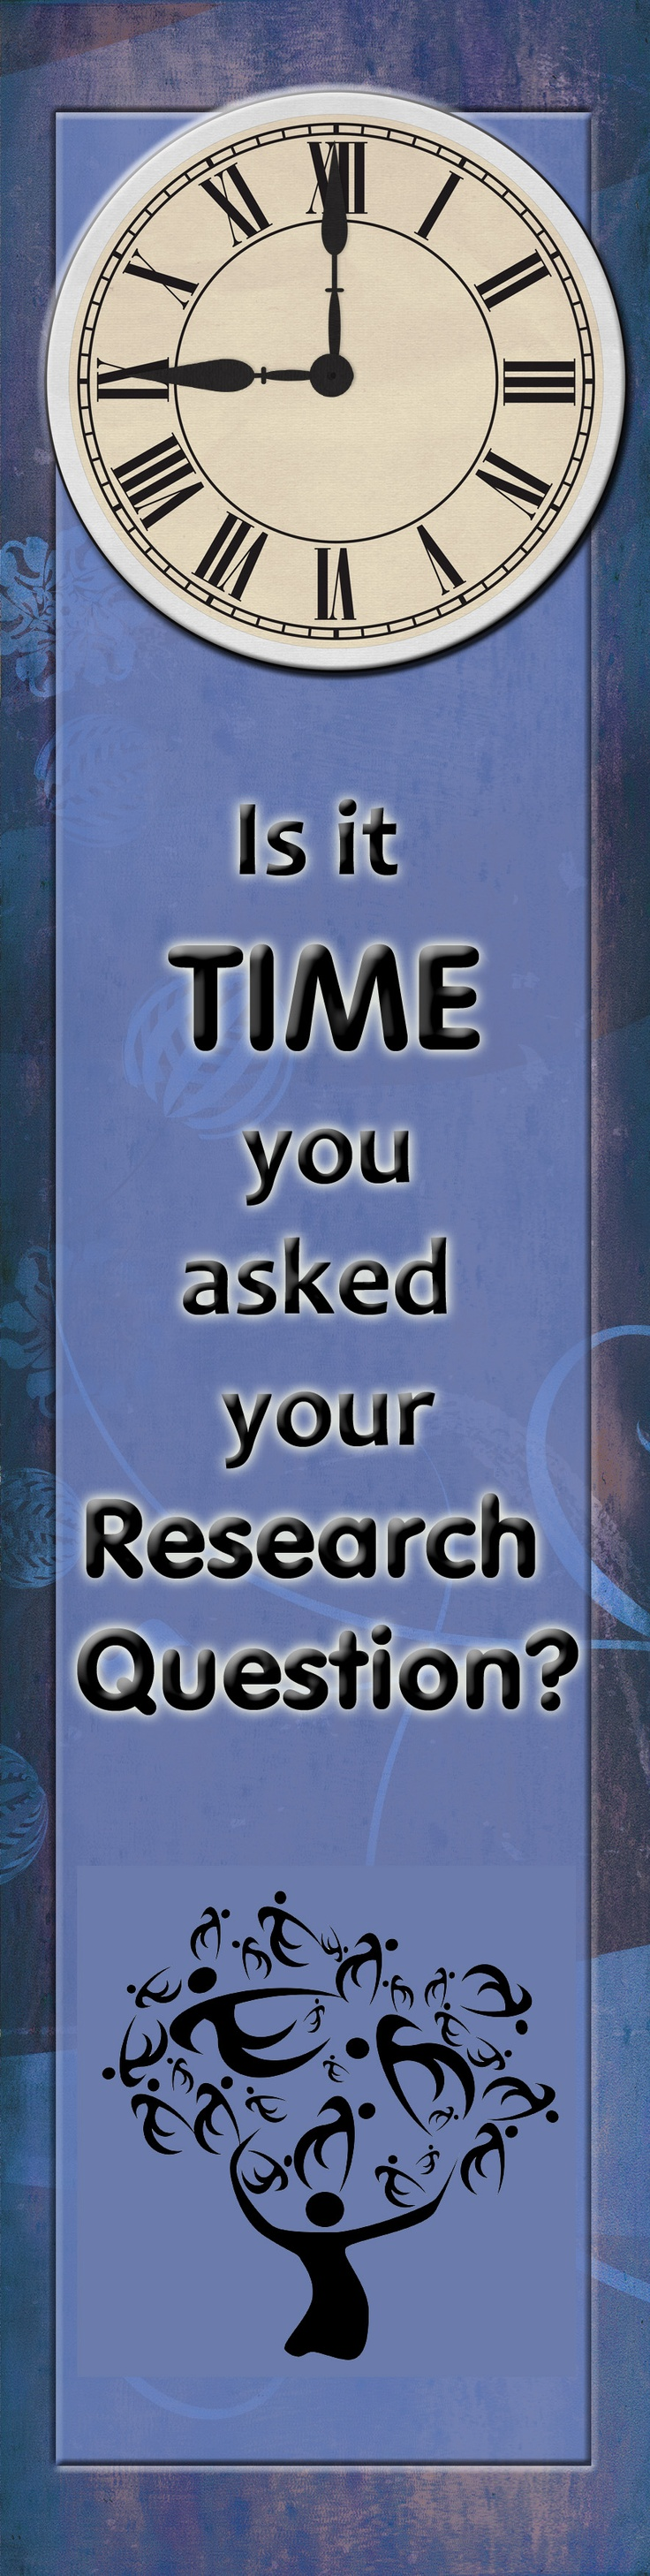 Baltimore county maryland genealogy learn familysearch org - Ask A Question Or Locate A Resource Familysearch Learn Https Www Familysearch Org Learn Join A Facebook Research Community